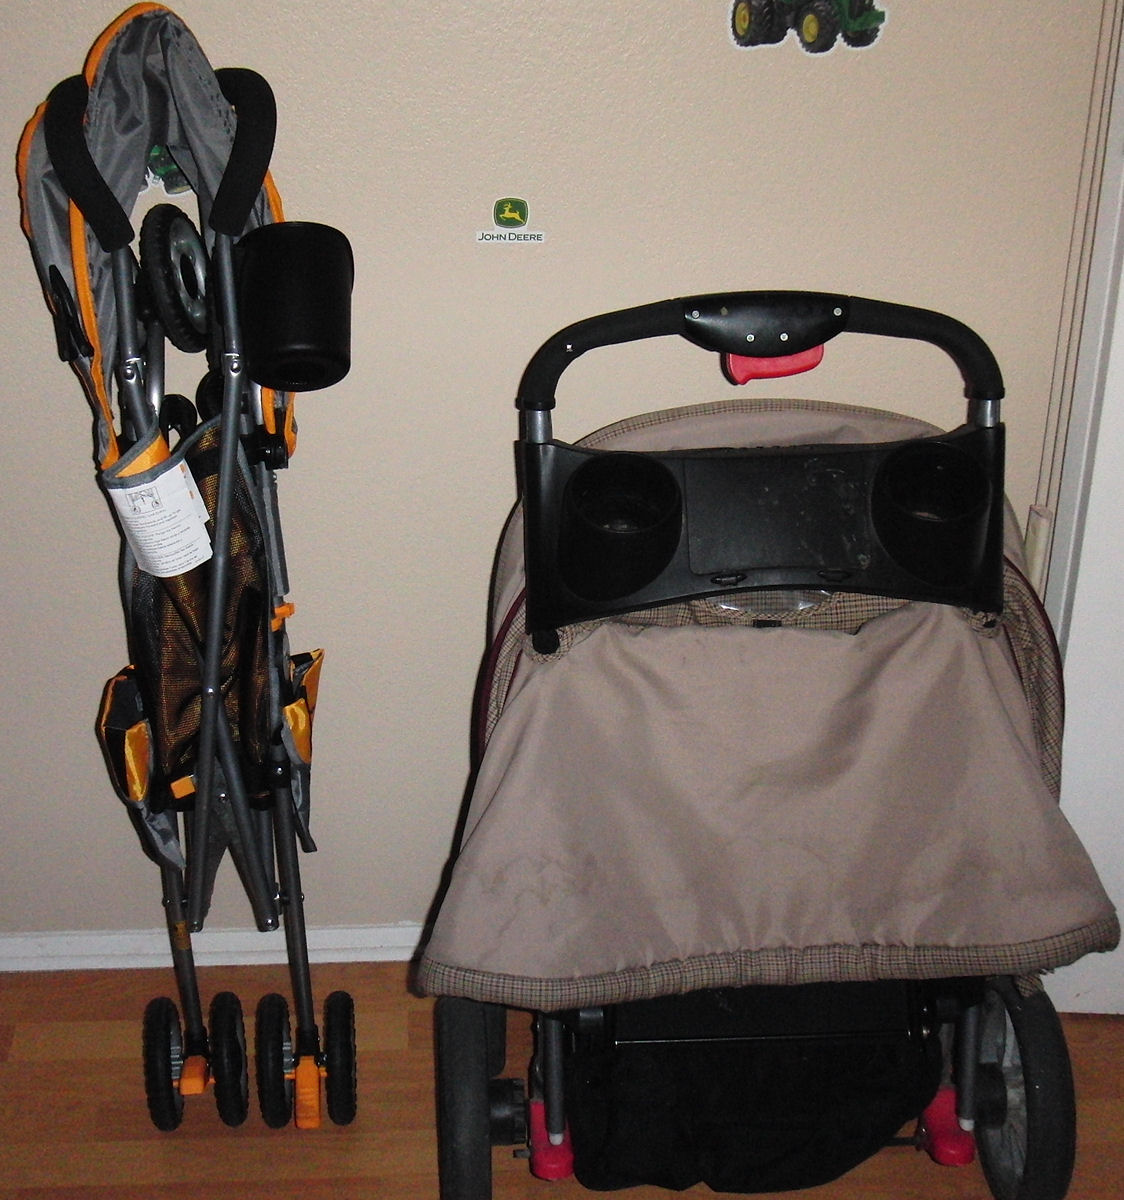 Strollers - By Kolcraft - Compare Prices, Reviews and Buy at